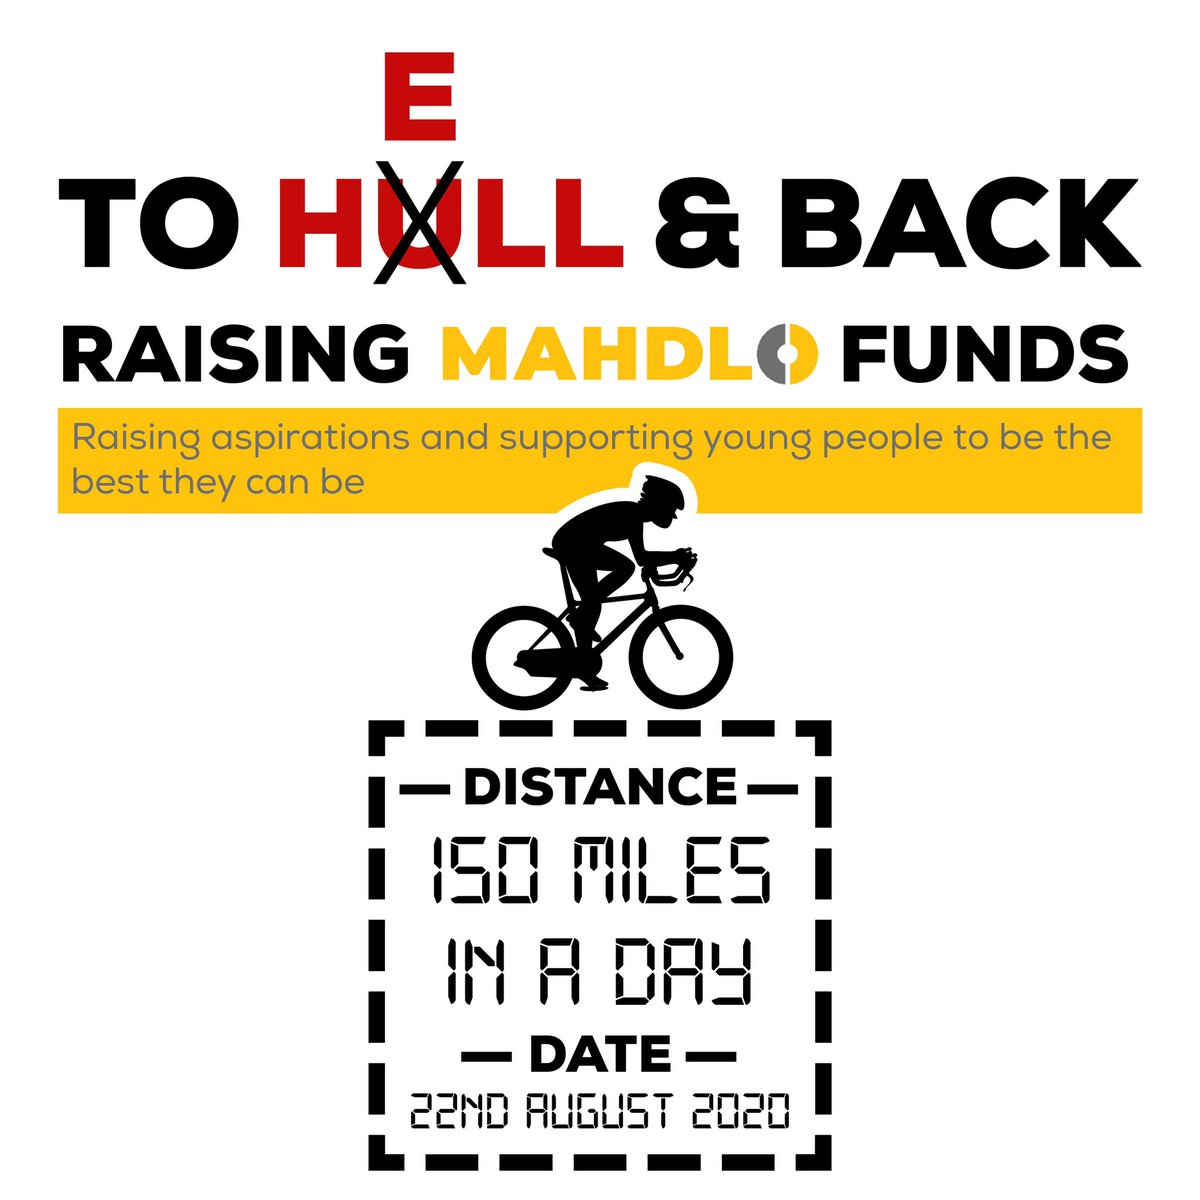 Hes never biked more than 30 miles before so this is going to be some challenge! 🤩 @Travelbaggins is putting two wheels to good use this August, cycling 150 miles in ONE DAY, to Hull and back, all to raise vital funds for Mahdlo! Support Jonathan ➡️ uk.virginmoneygiving.com/JonathanLloyd22